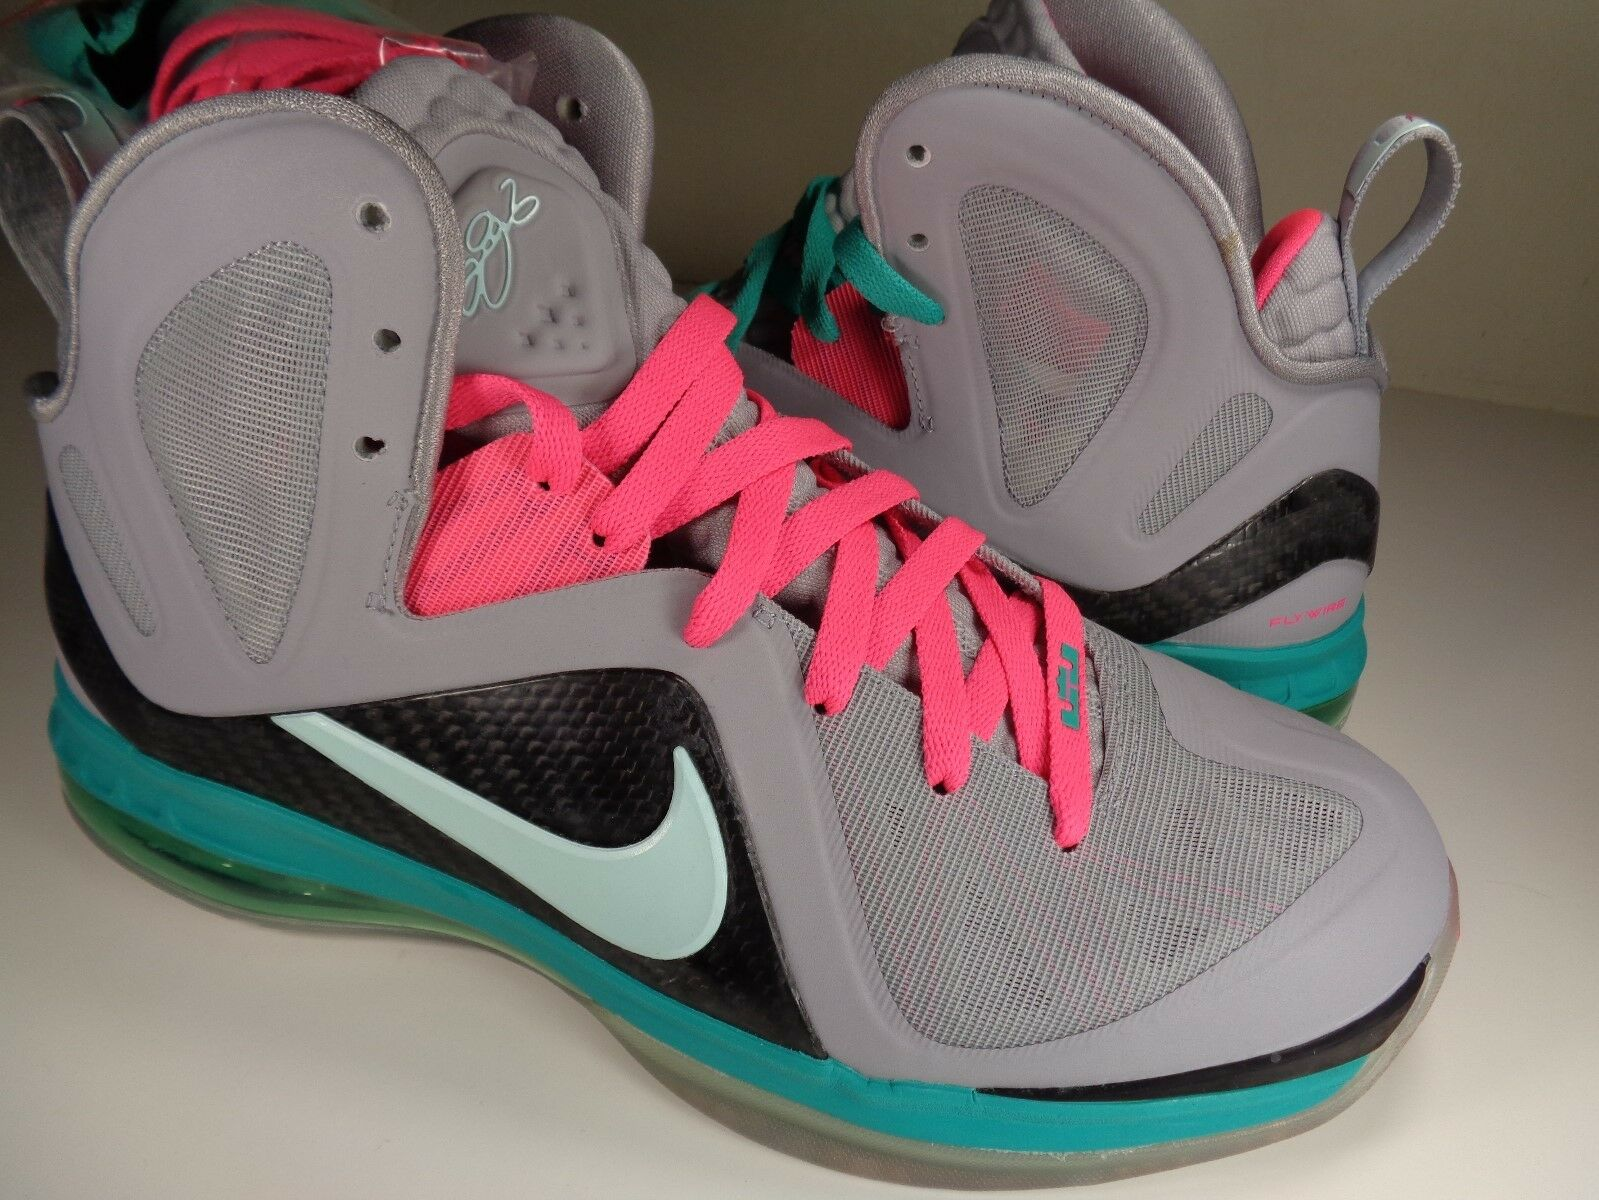 finest selection 356e1 85248 Nike Lebron 9 PS Elite IX South Beach Wolf Grey Pink Green SZ 9  (516958-001) 1 of 8Only 1 available ...